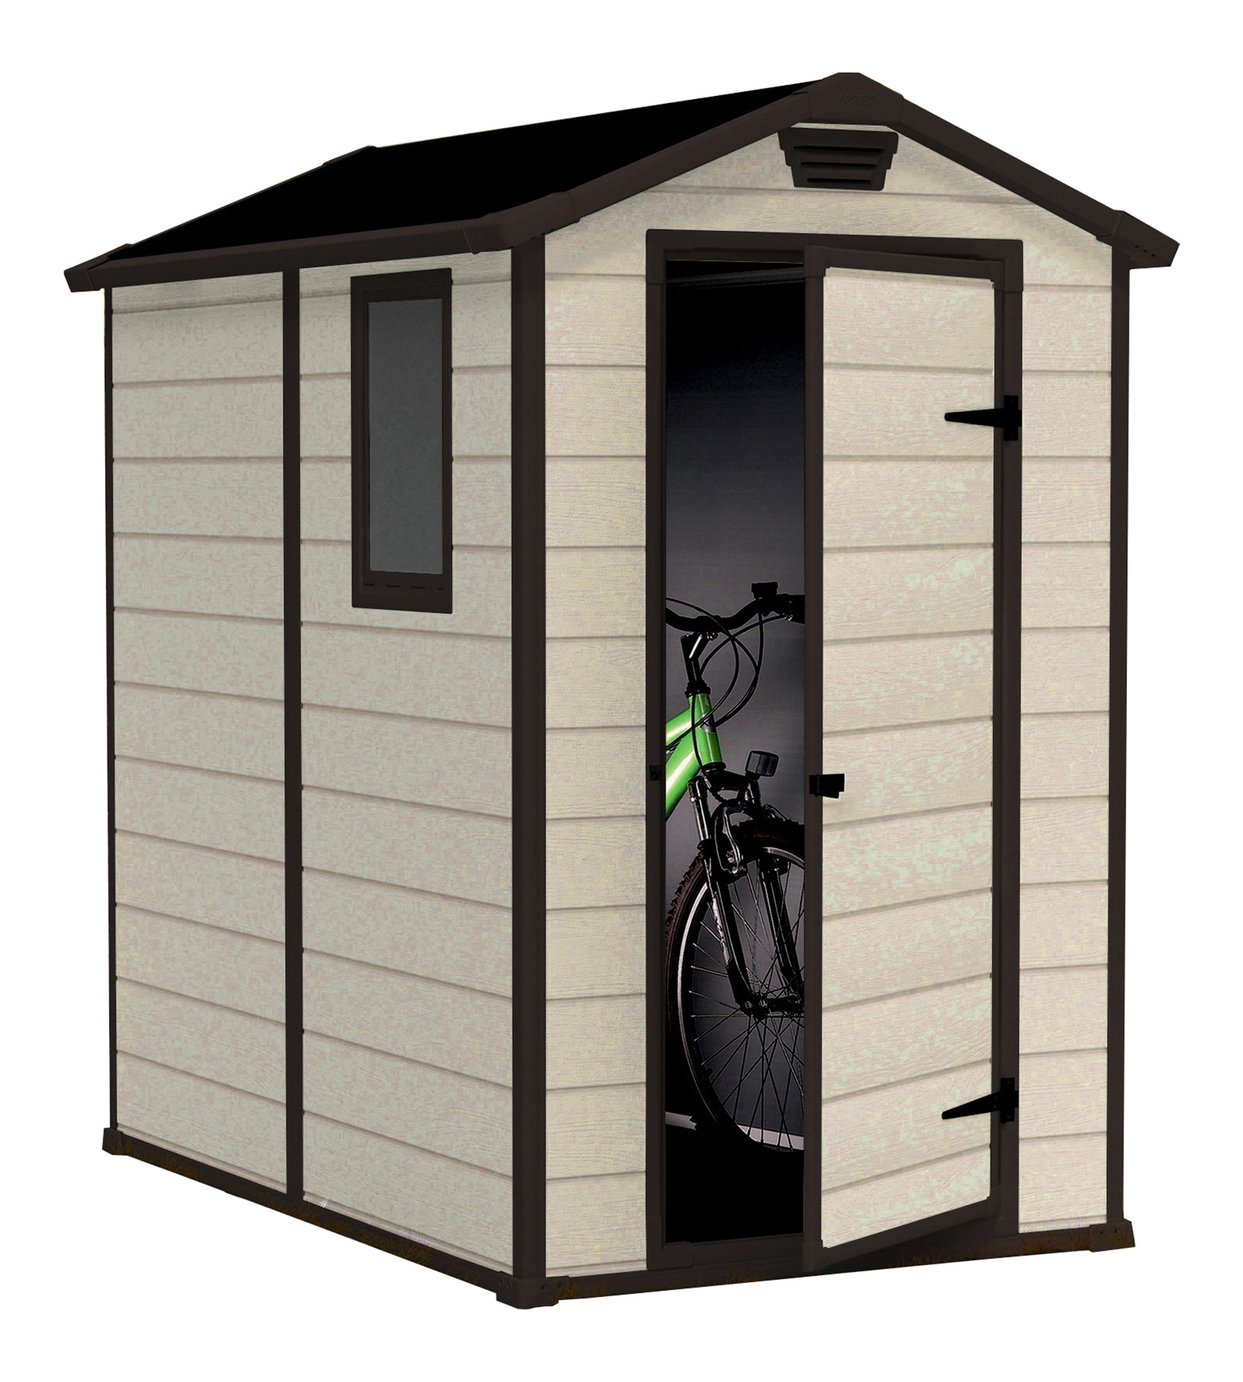 Keter Manor Apex Garden Storage Shed 4 x 6ft - Beige/Brown